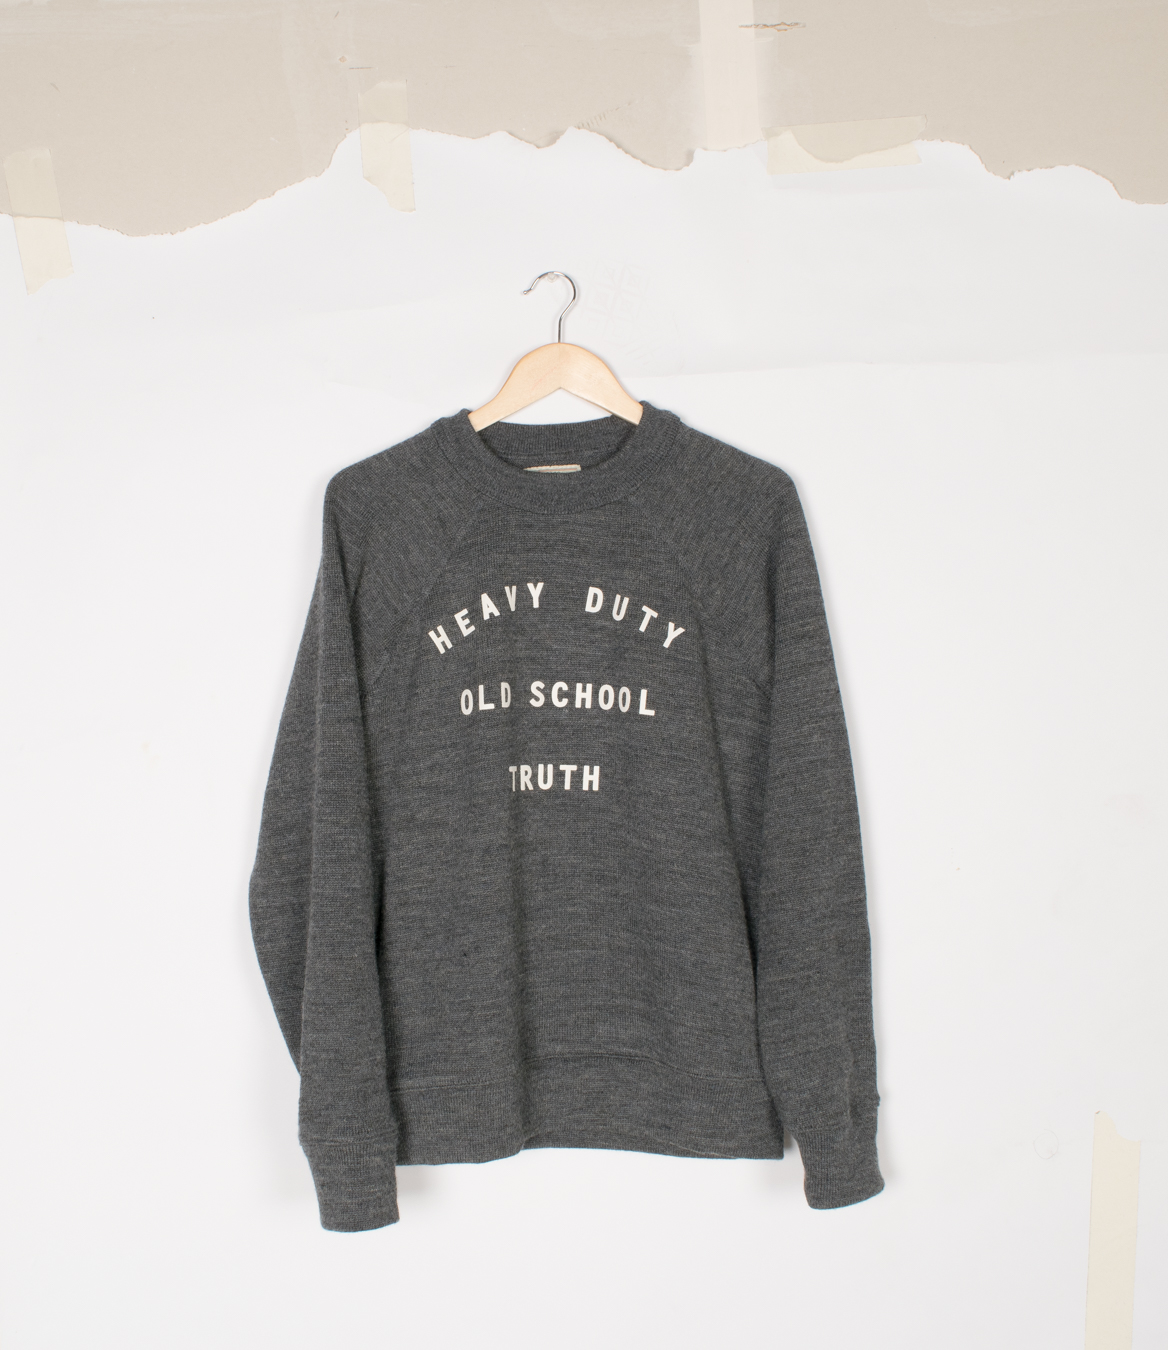 Crew Neck - Charcoal -$140/$285 | With Decoration $145/$295